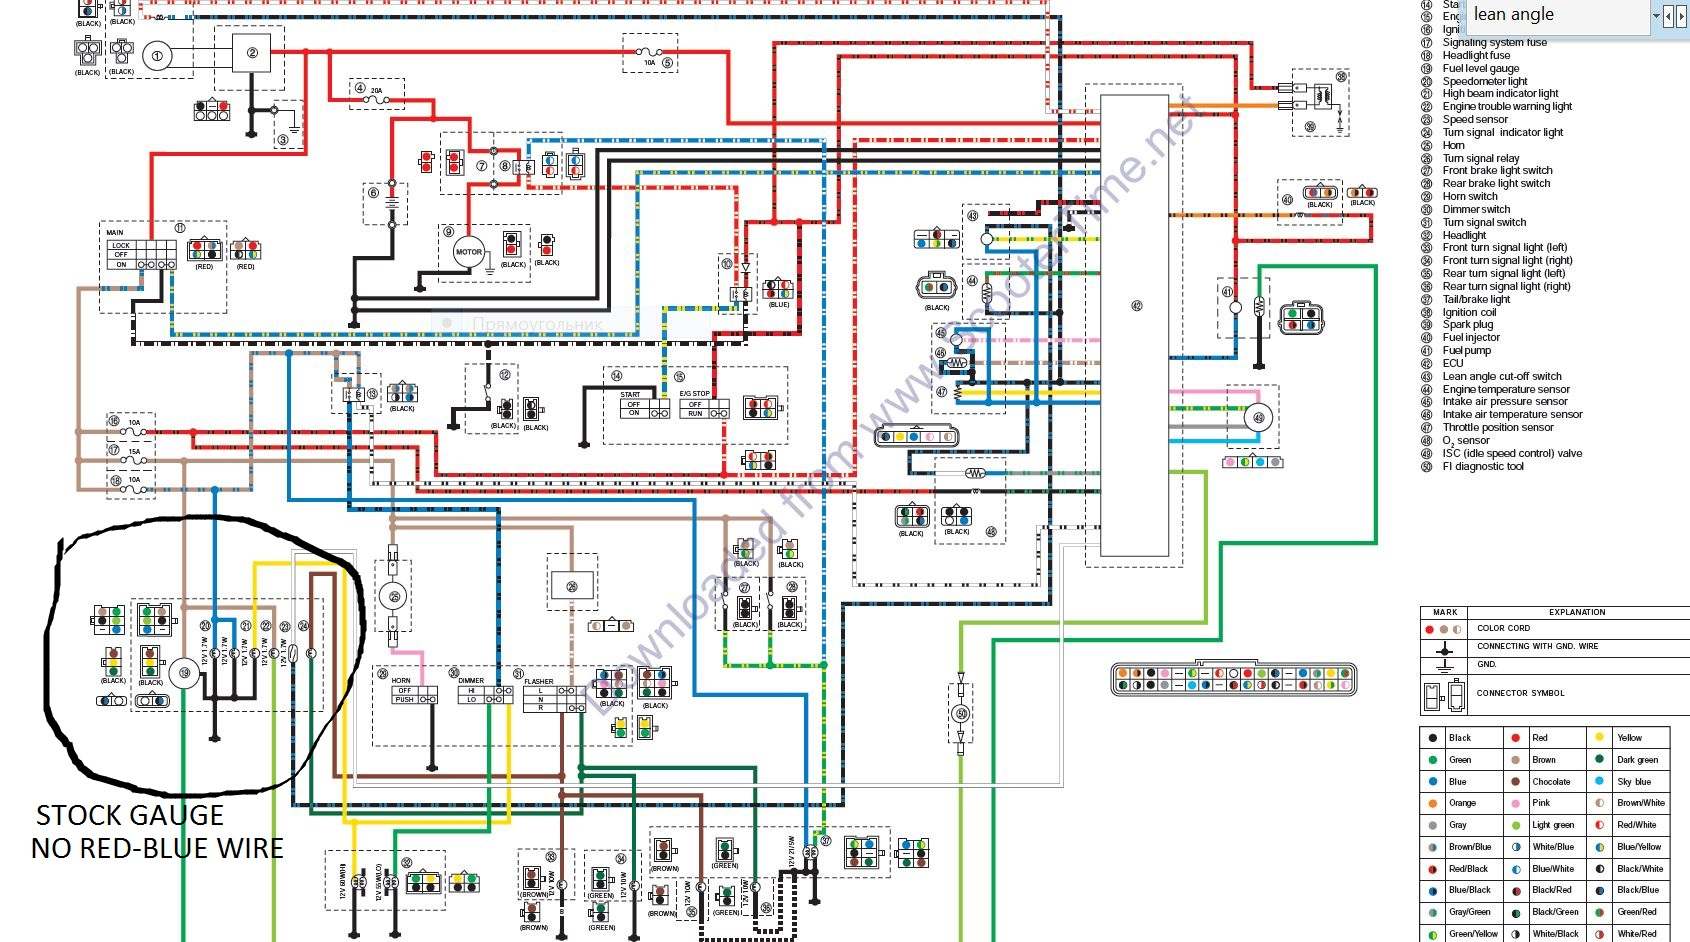 yamaha zuma wiring diagram online wiring diagram 24 Volt Electric Scooter Wiring Diagram yamaha zuma wiring diagram wiring diagram 2005 yamaha zuma wiring diagram yamaha zuma wiring diagram